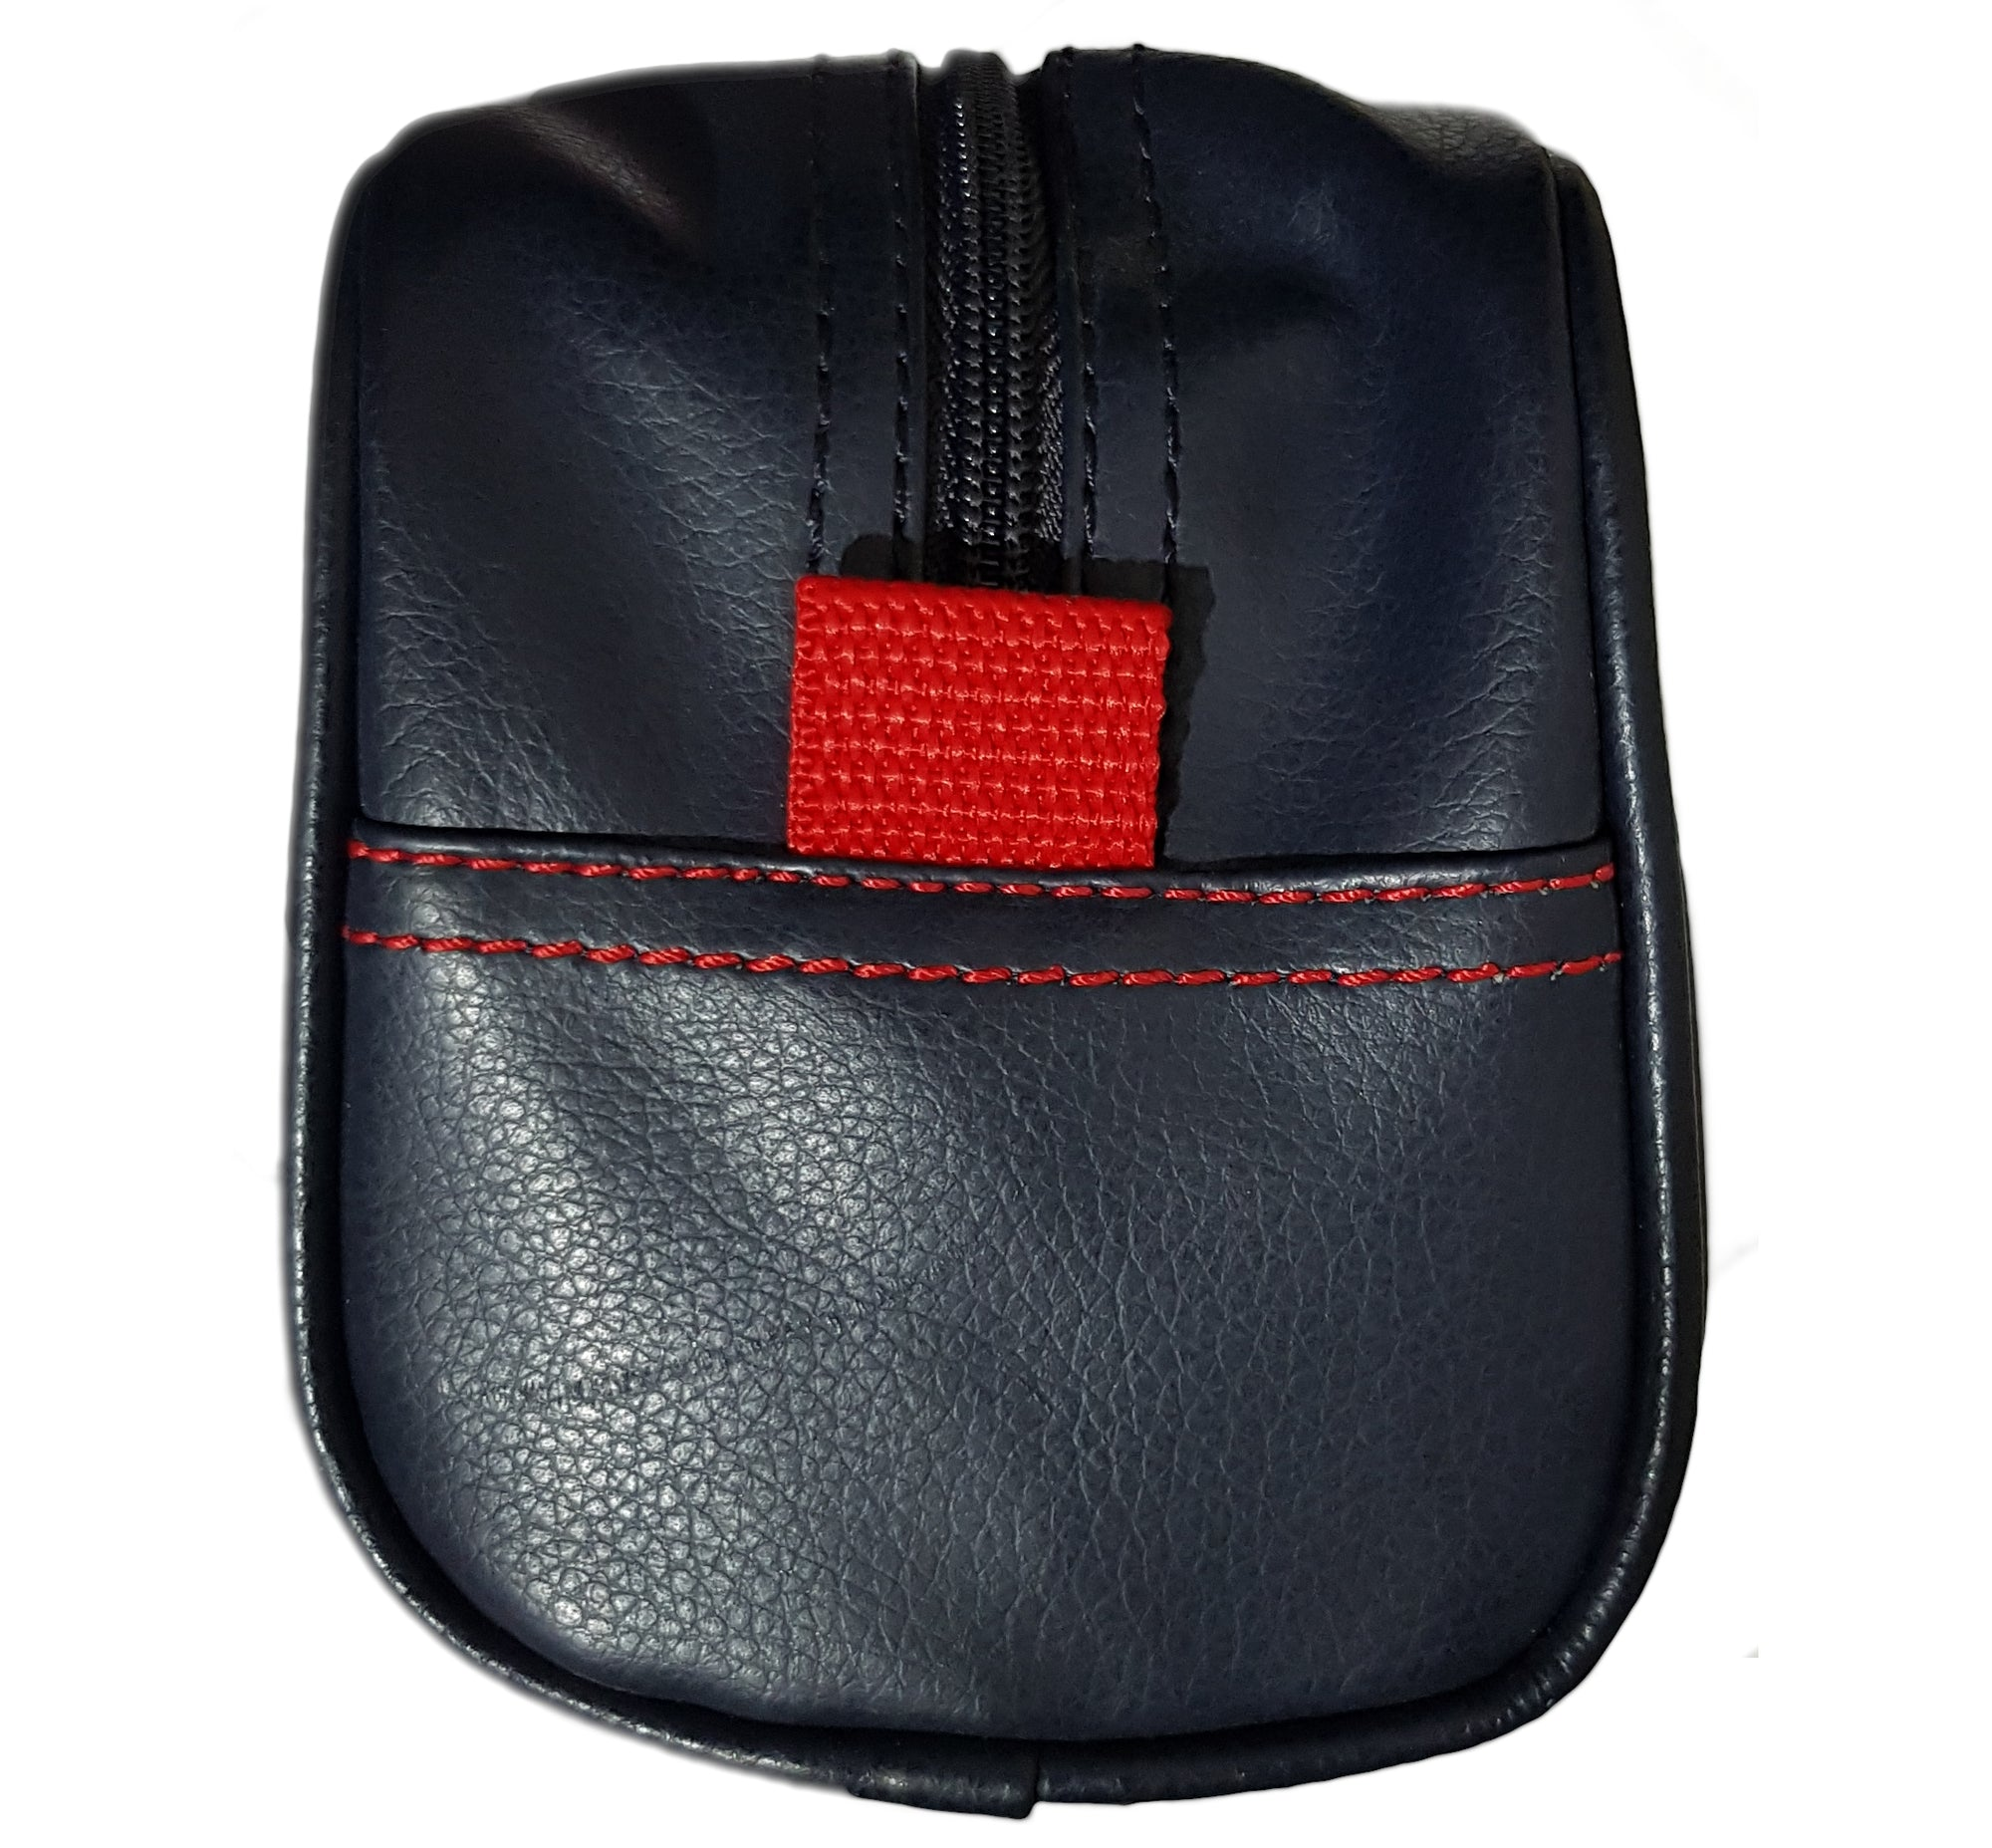 Nautica Toiletries Bag (dark navy blue with red side tab)